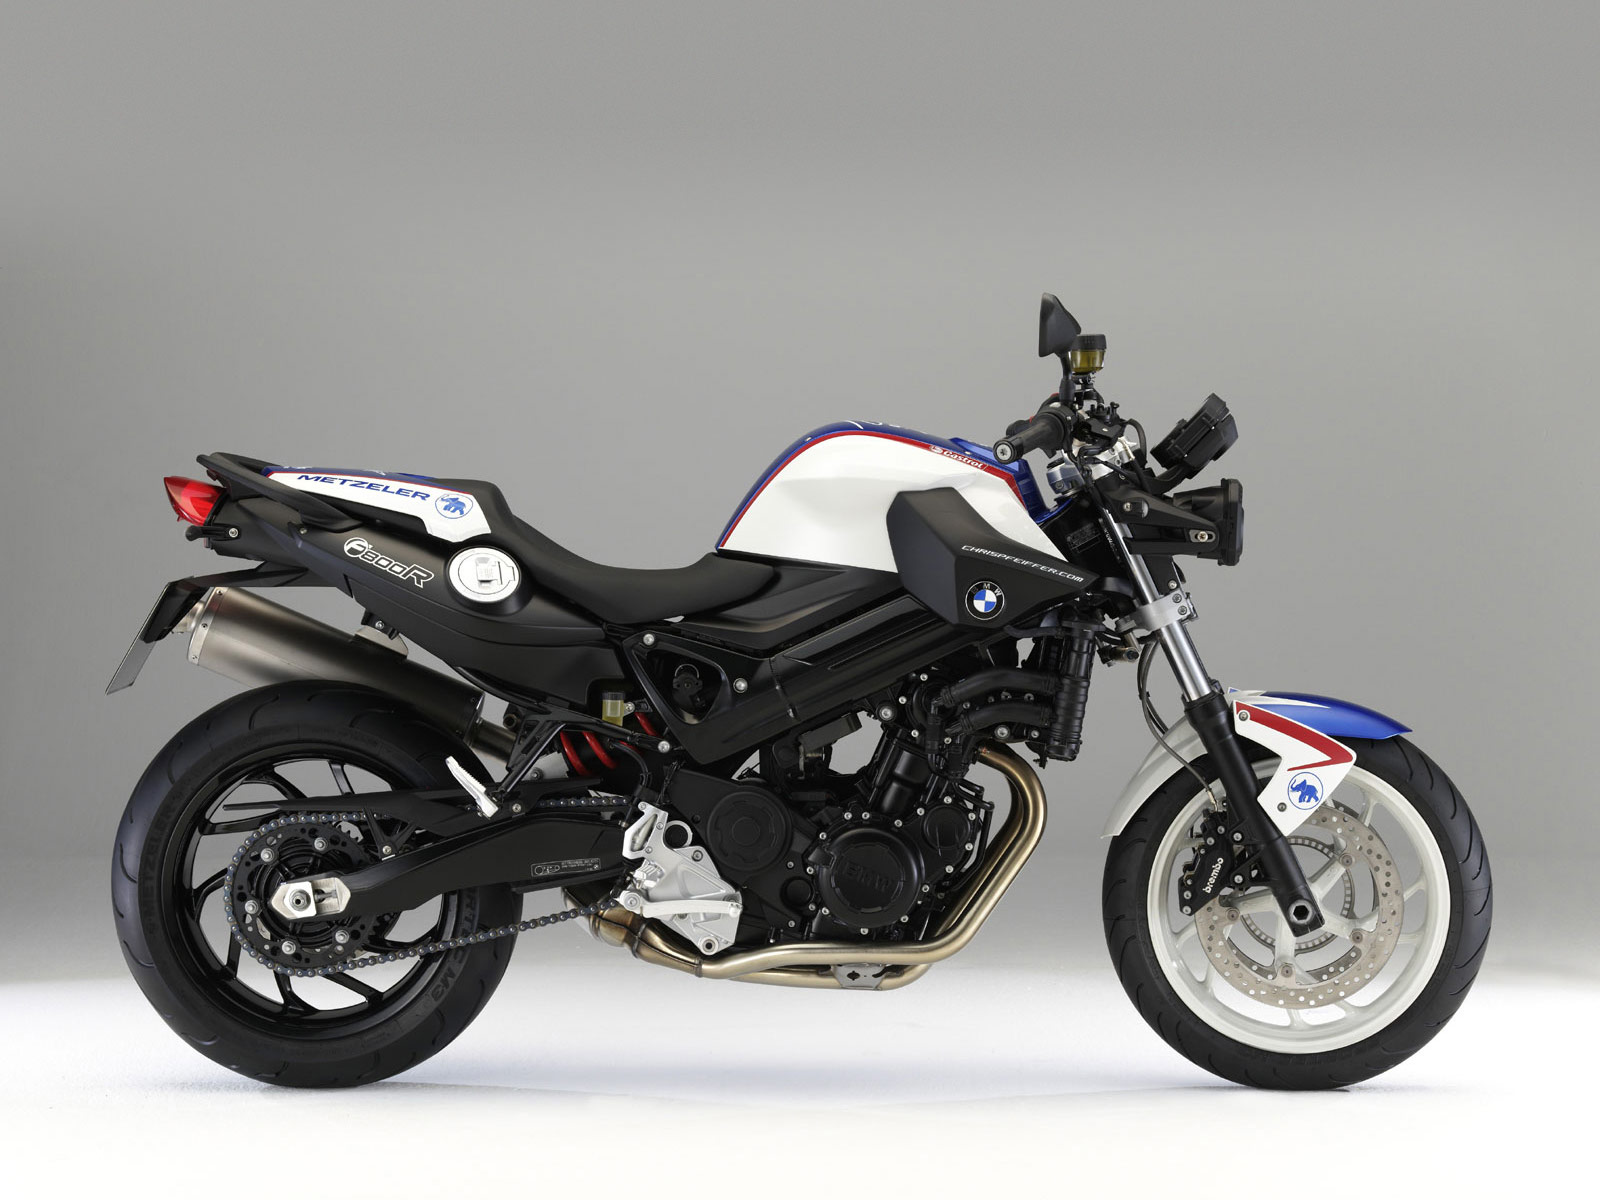 Tattoo Design Era 2010 New Bmw F800r Chris Pfeiffer Edition